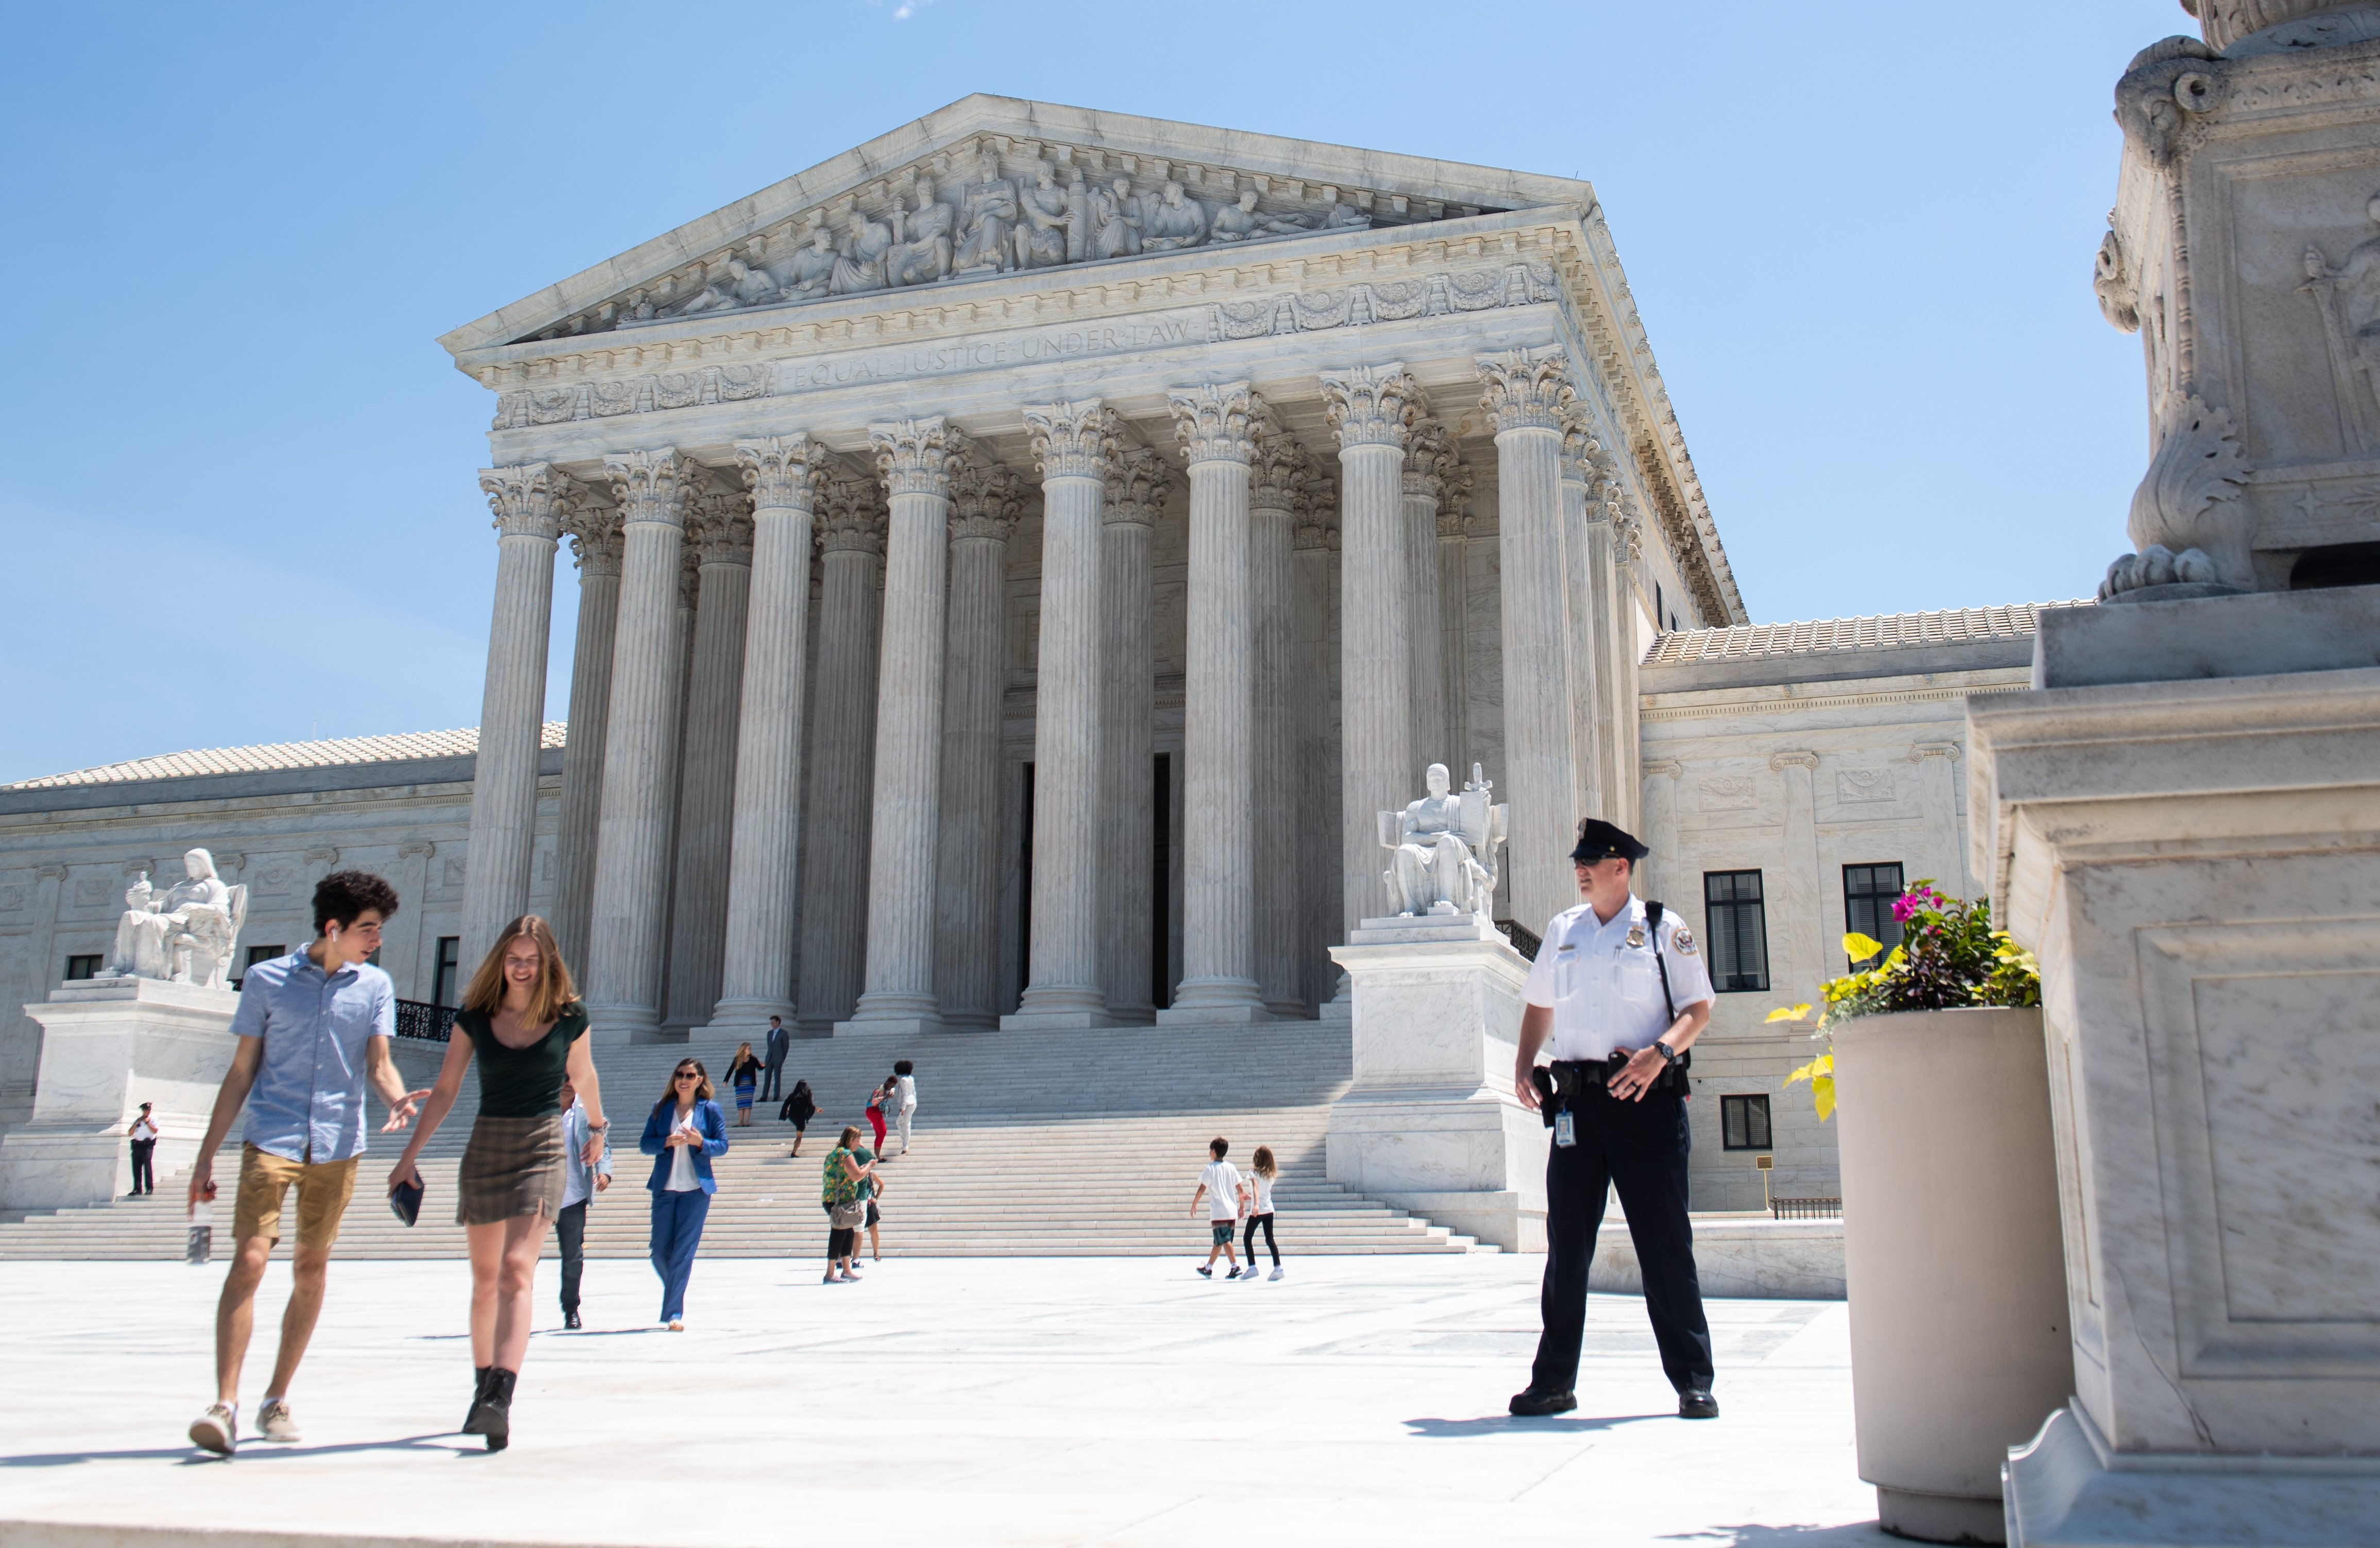 The Supreme Court as seen on June 24, 2019. (Saul Loeb/AFP/Getty Images)